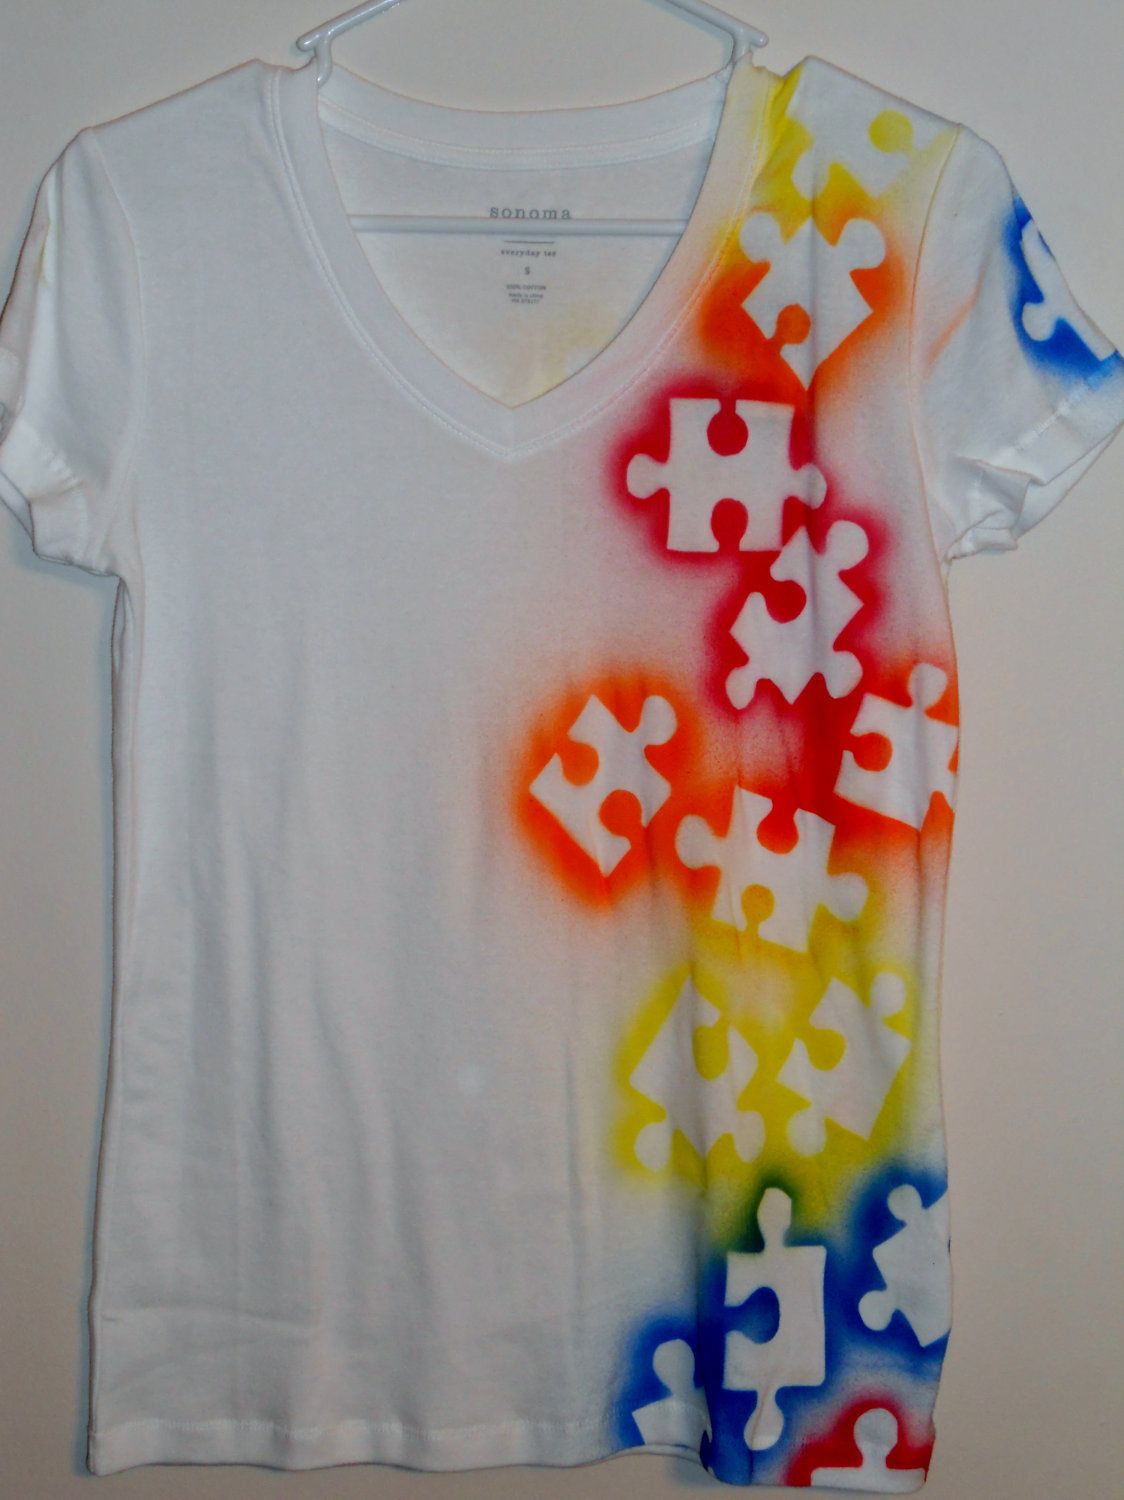 9ca75ee4 T Shirt selbst designen mit kreativen MotivenTap the link to check out  great fidgets and sensory toys. Check back often for sales and new items.